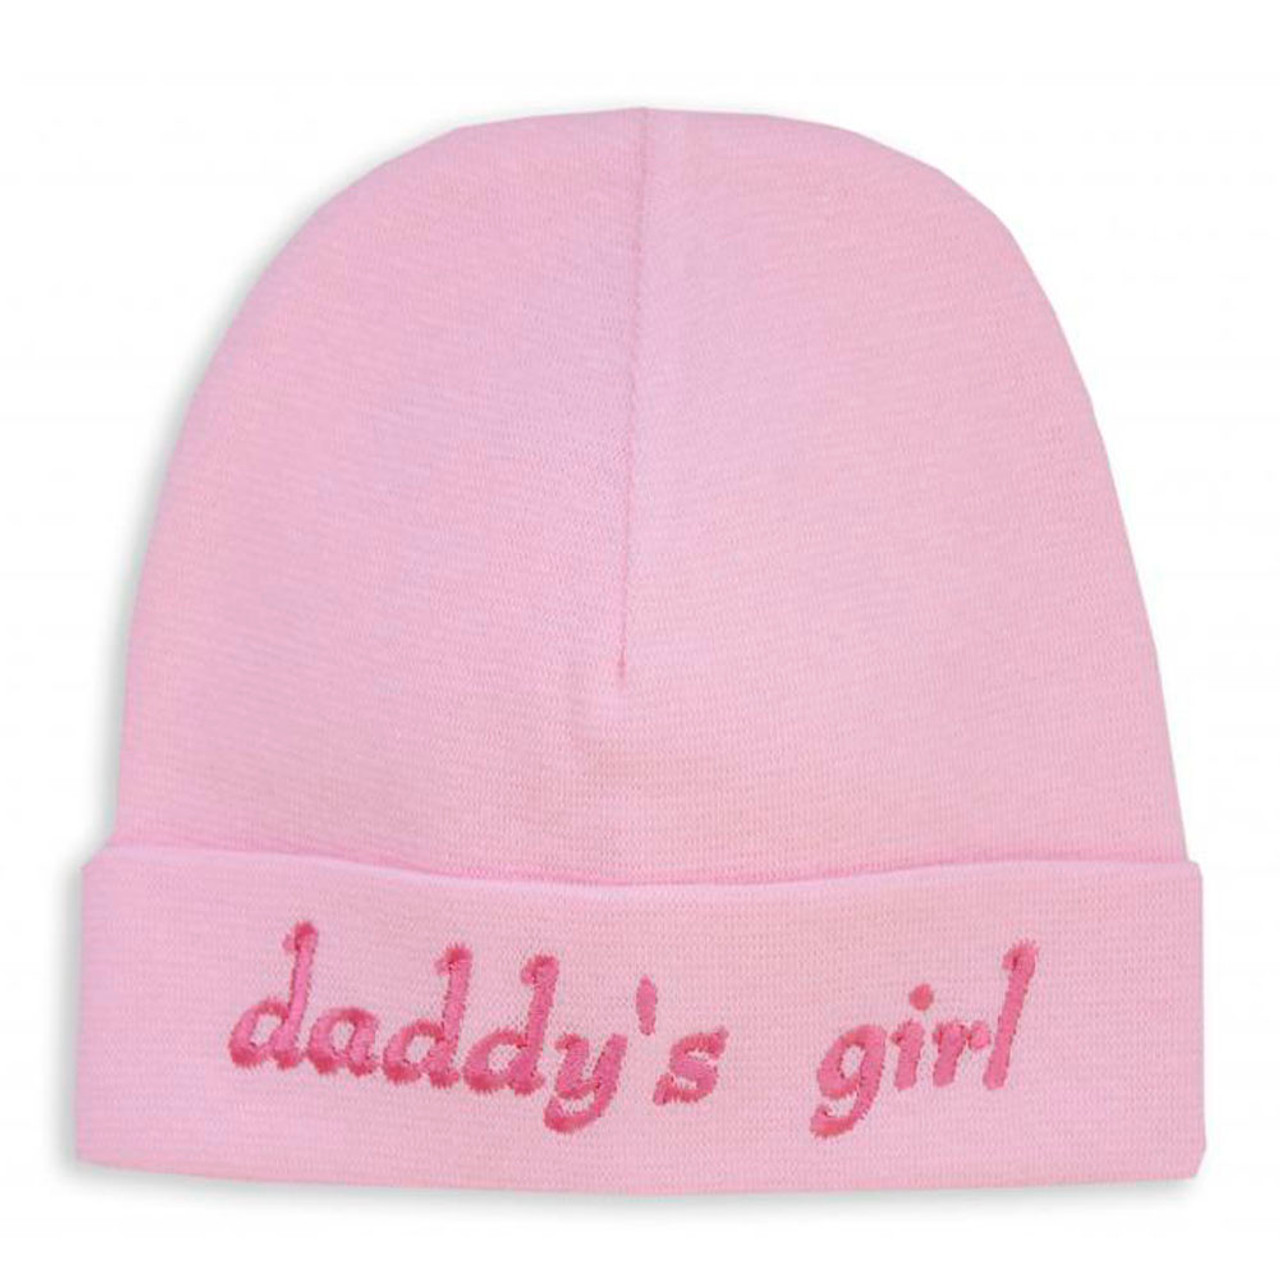 96cf57db8203 Itty Bitty Baby Embroidered Toque - Daddy s Girl (0-6 Months) - Dear ...